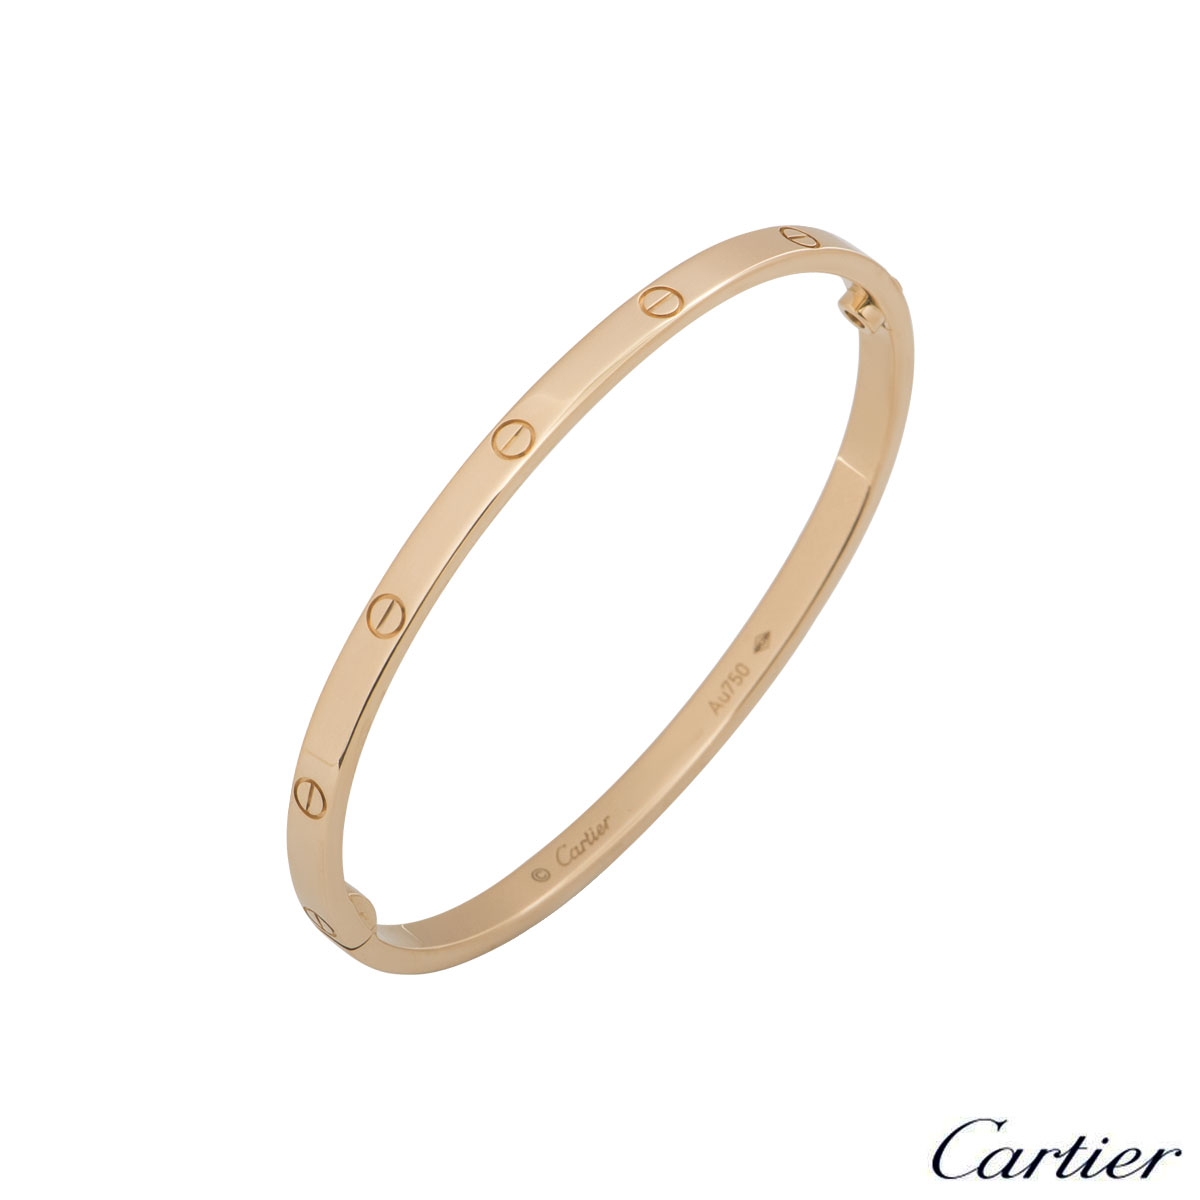 Cartier Rose Gold Plain Love Bracelet SM Size 16 B6047316